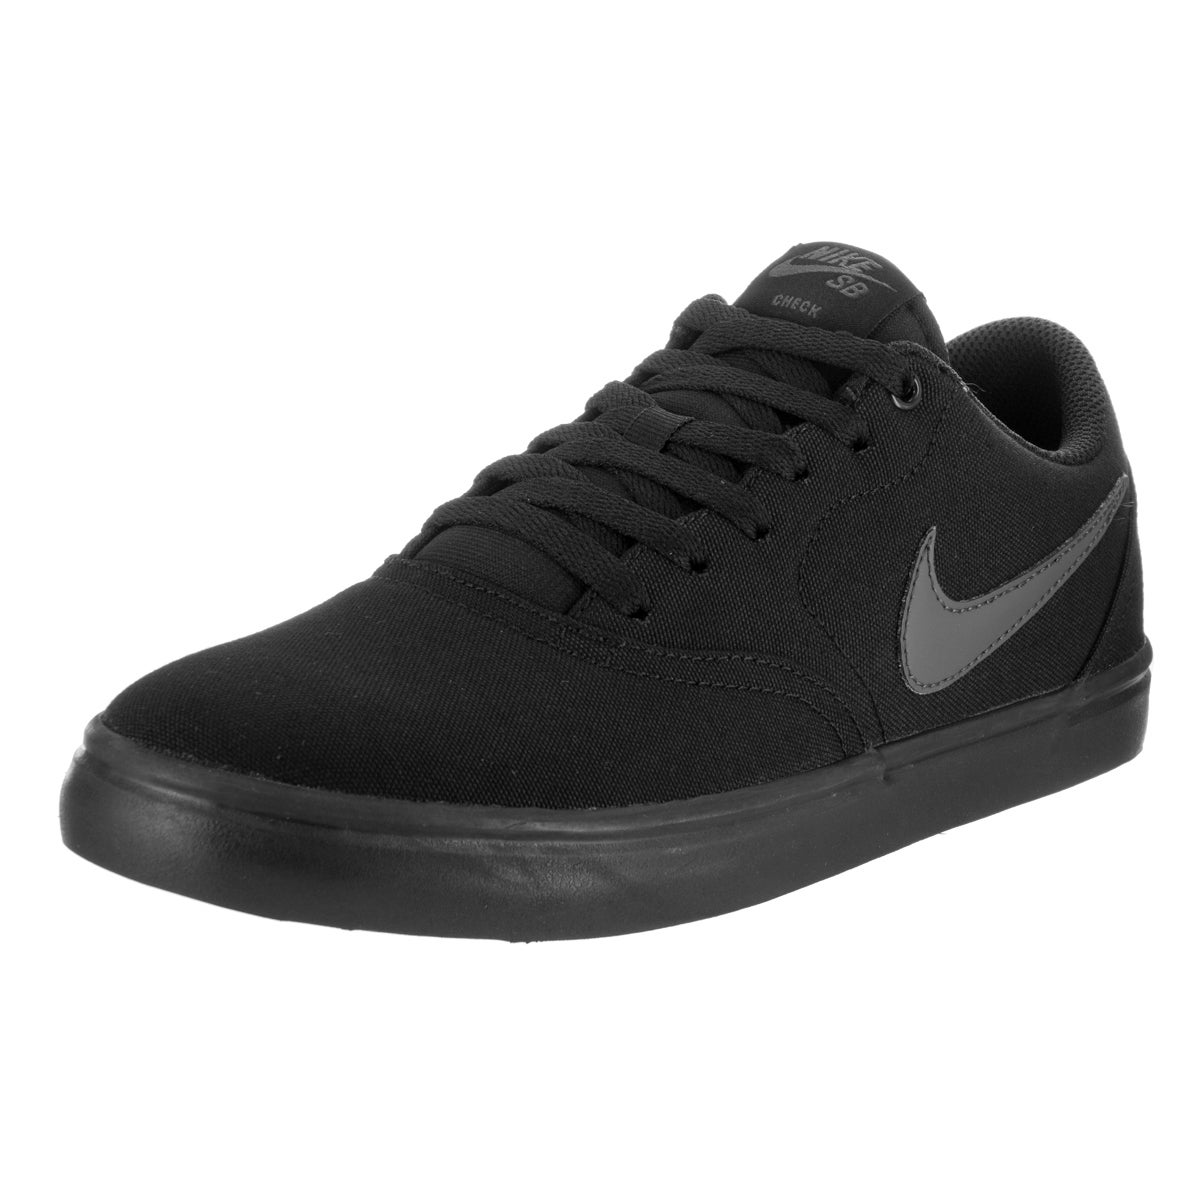 Nike Unisex SB Check Solar Canvas Skate Shoe (13), Black